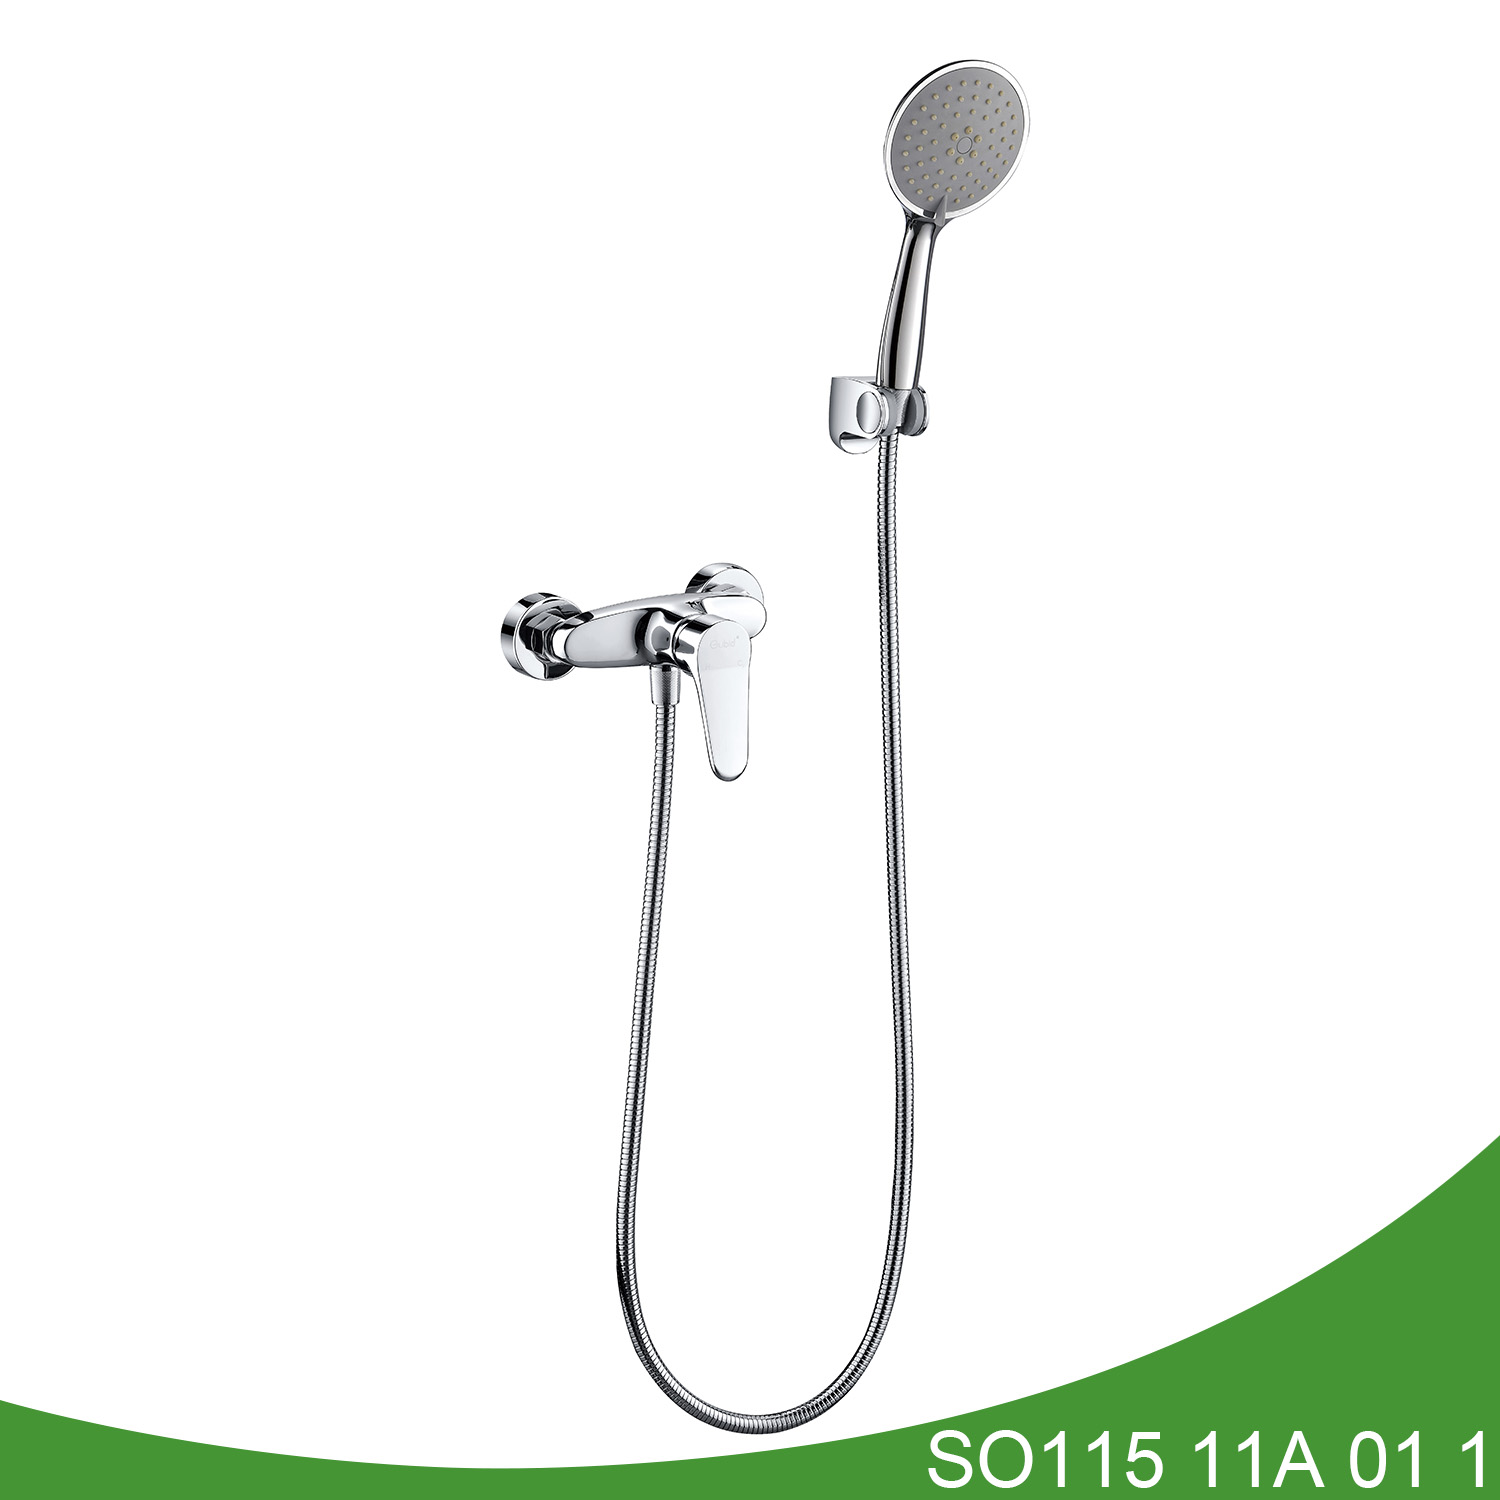 Exposed shower set SO115 11A 01 1